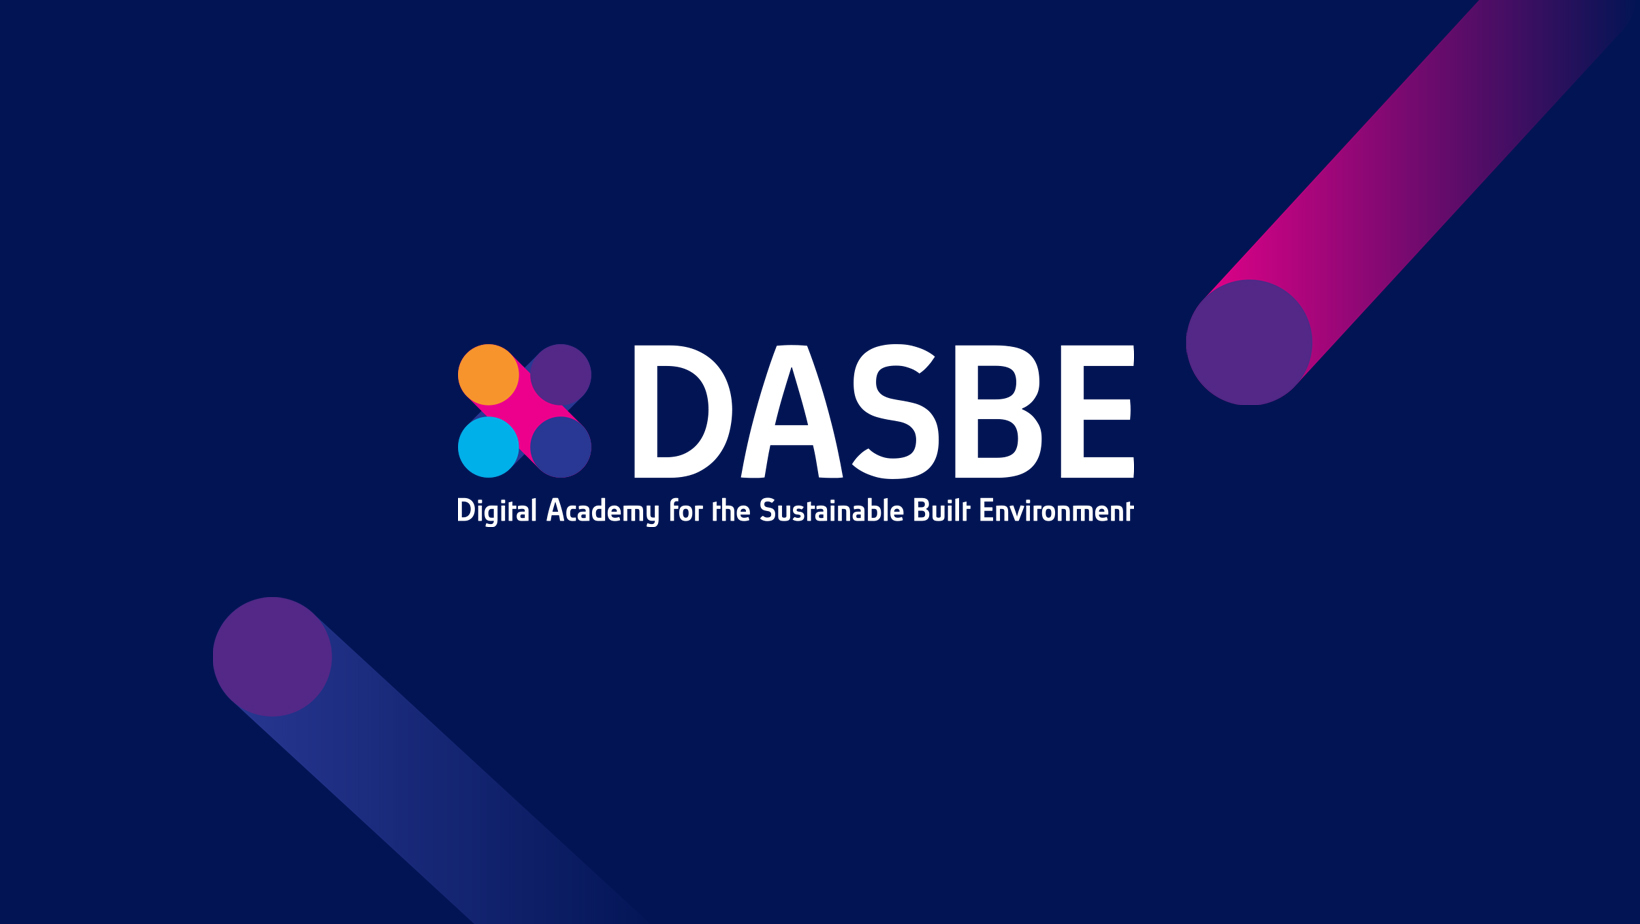 DASBE – Digital Academy for Sustainable Built Environment